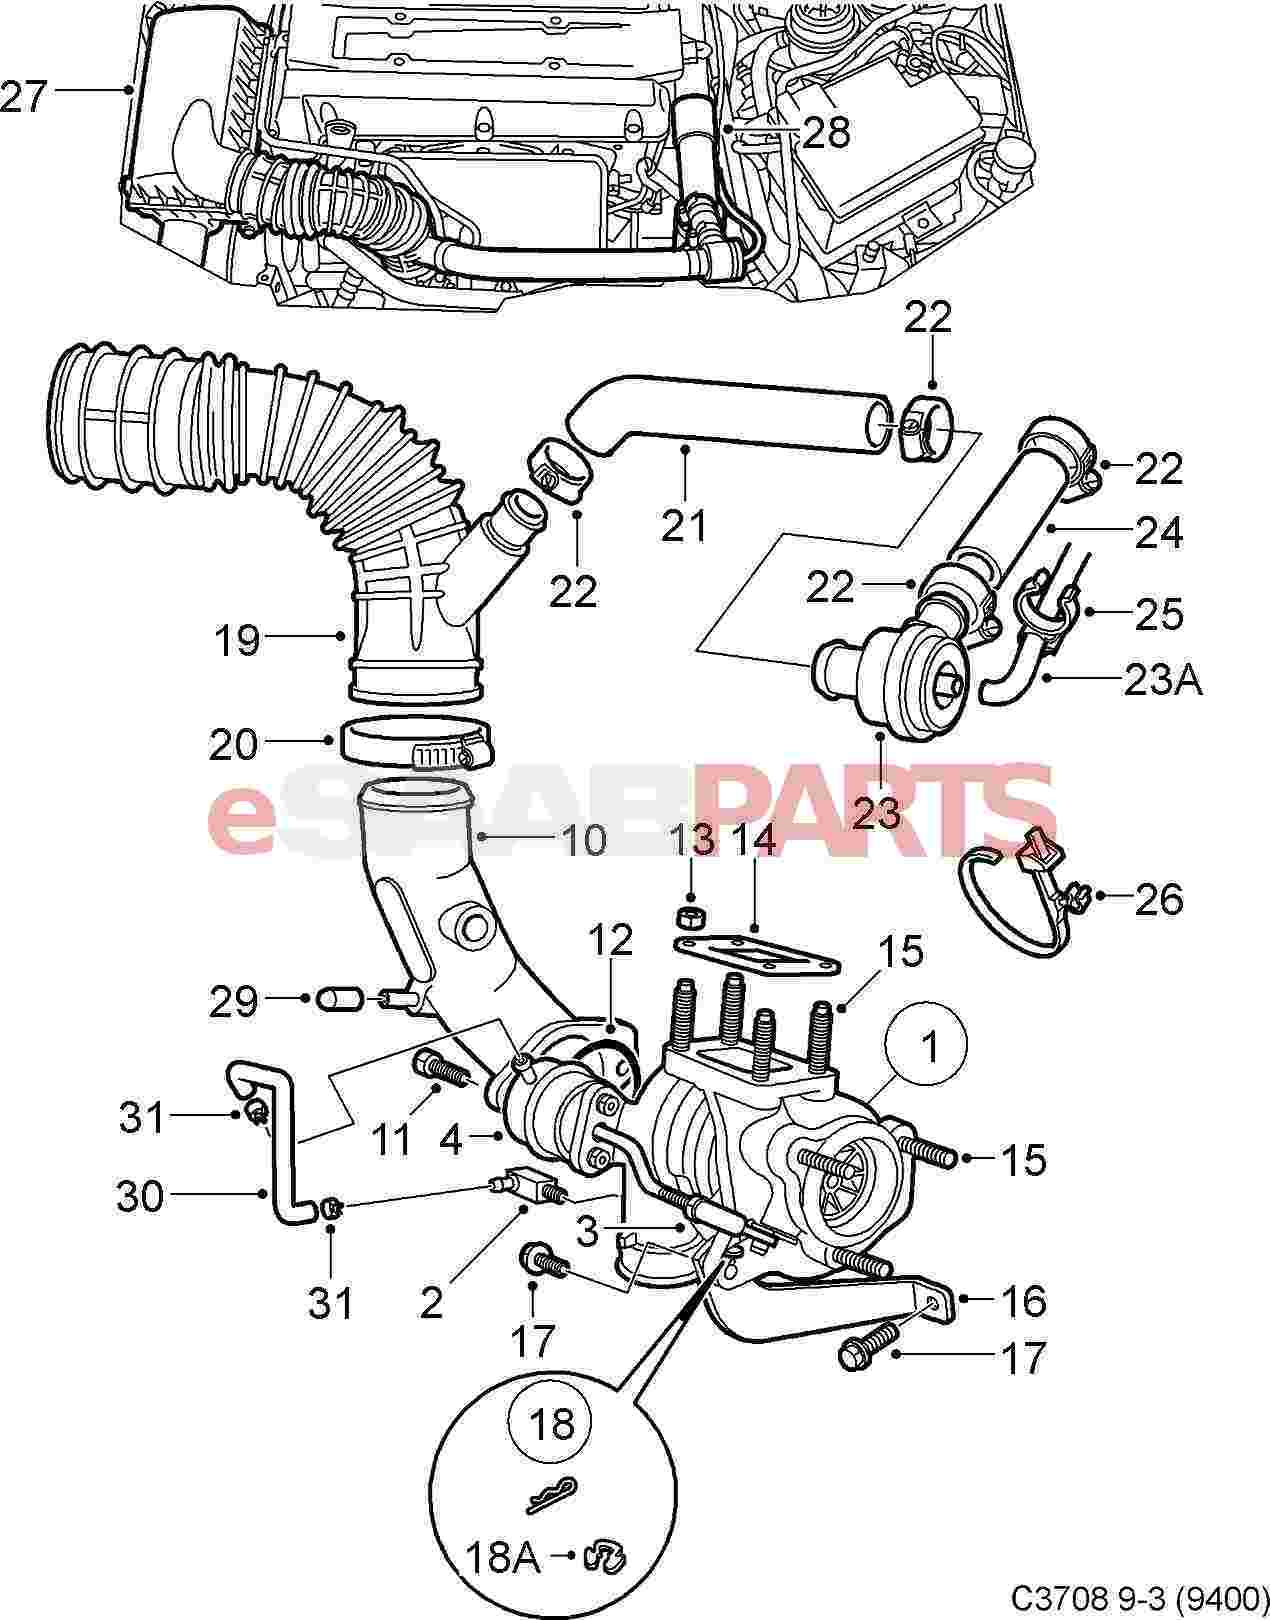 2004 saab 9 3 vacuum diagram  u2022 wiring diagram for free